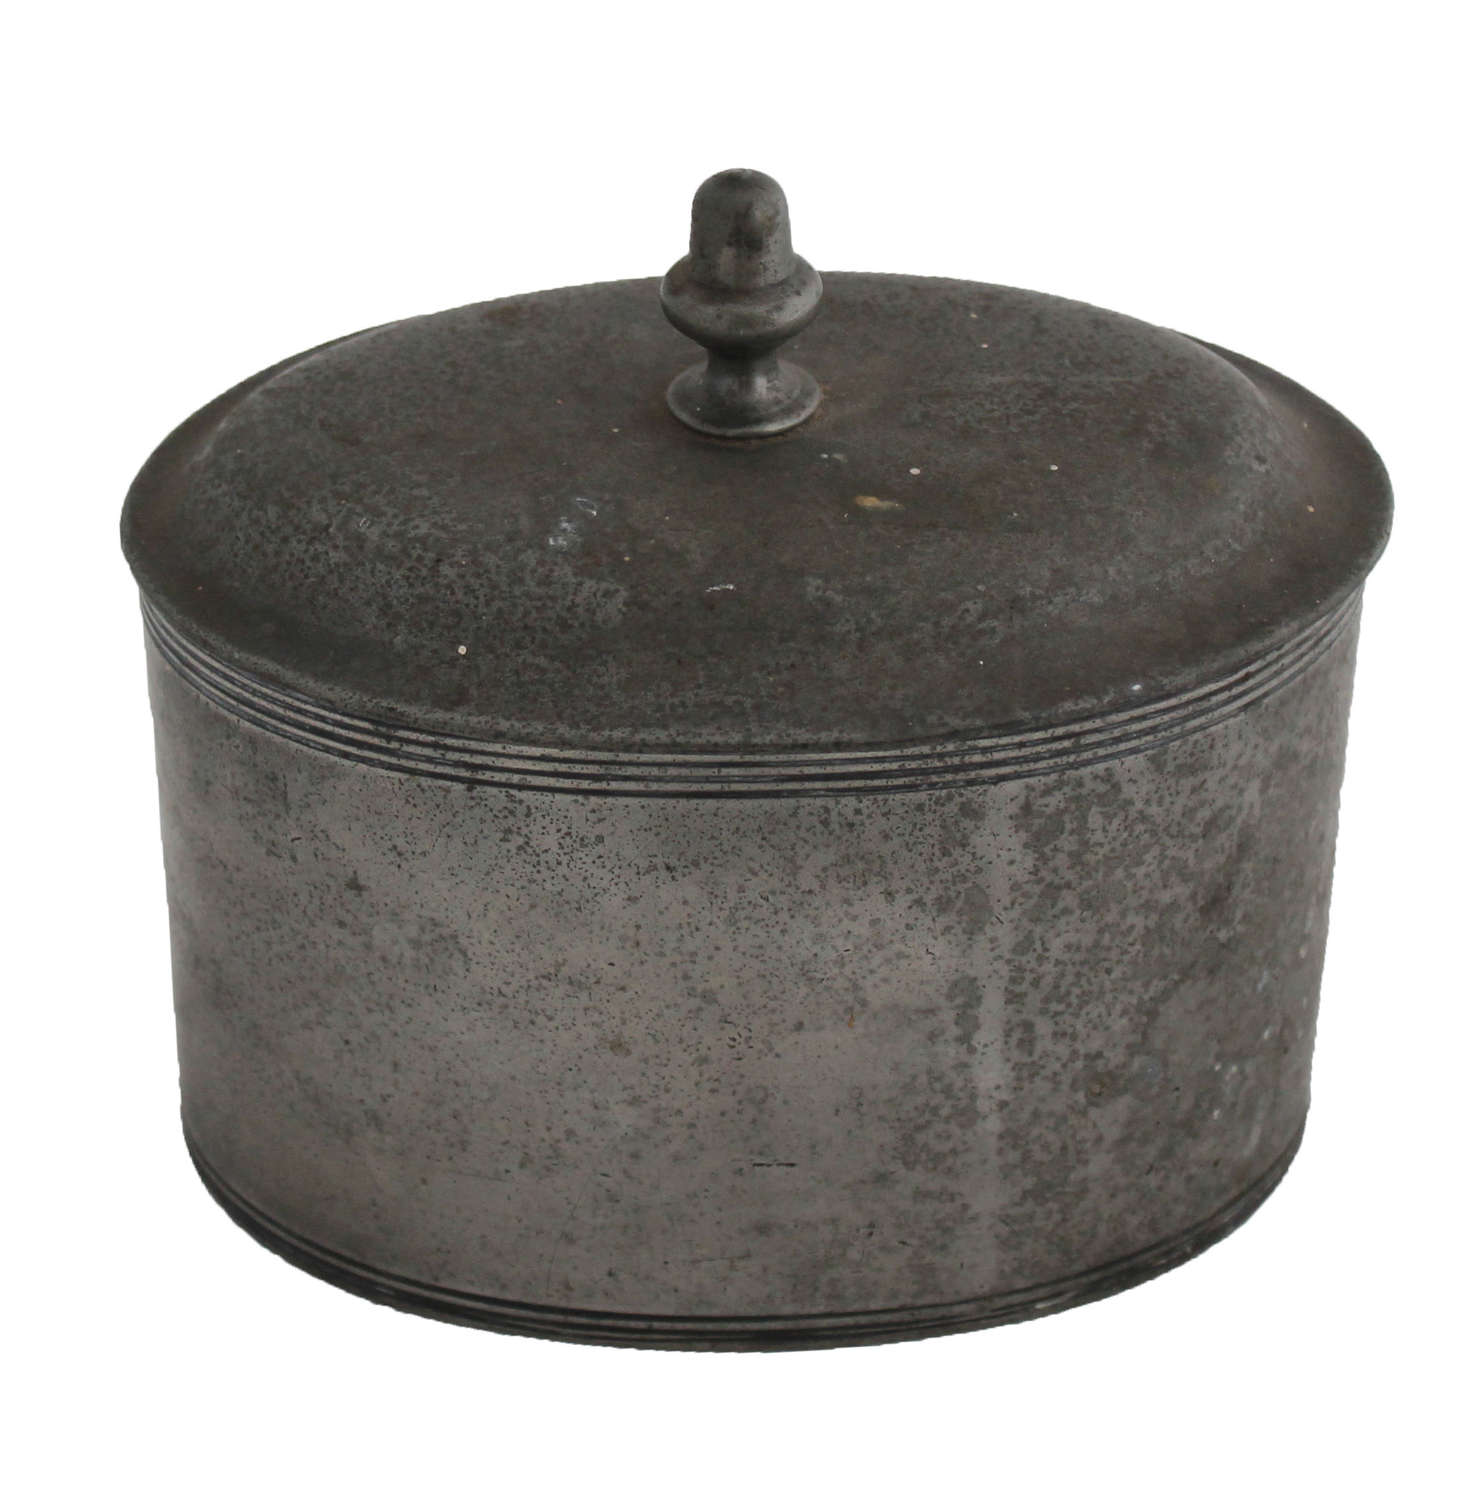 George III Pewter Tobacco Jar with Acorn Finial